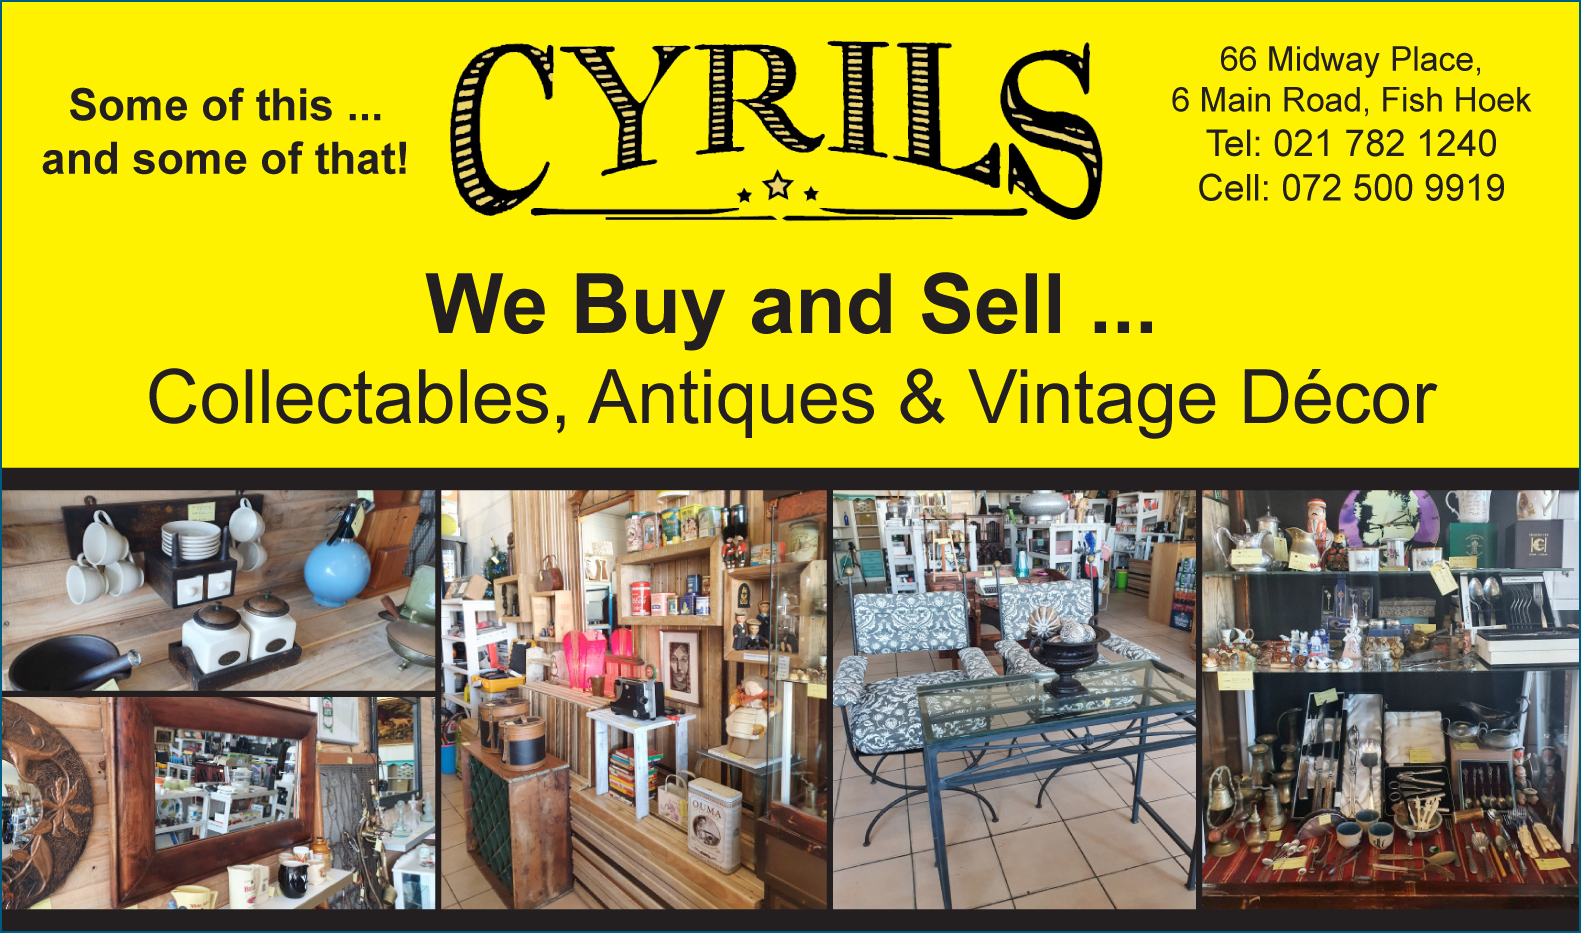 Cyril's Fish Hoek